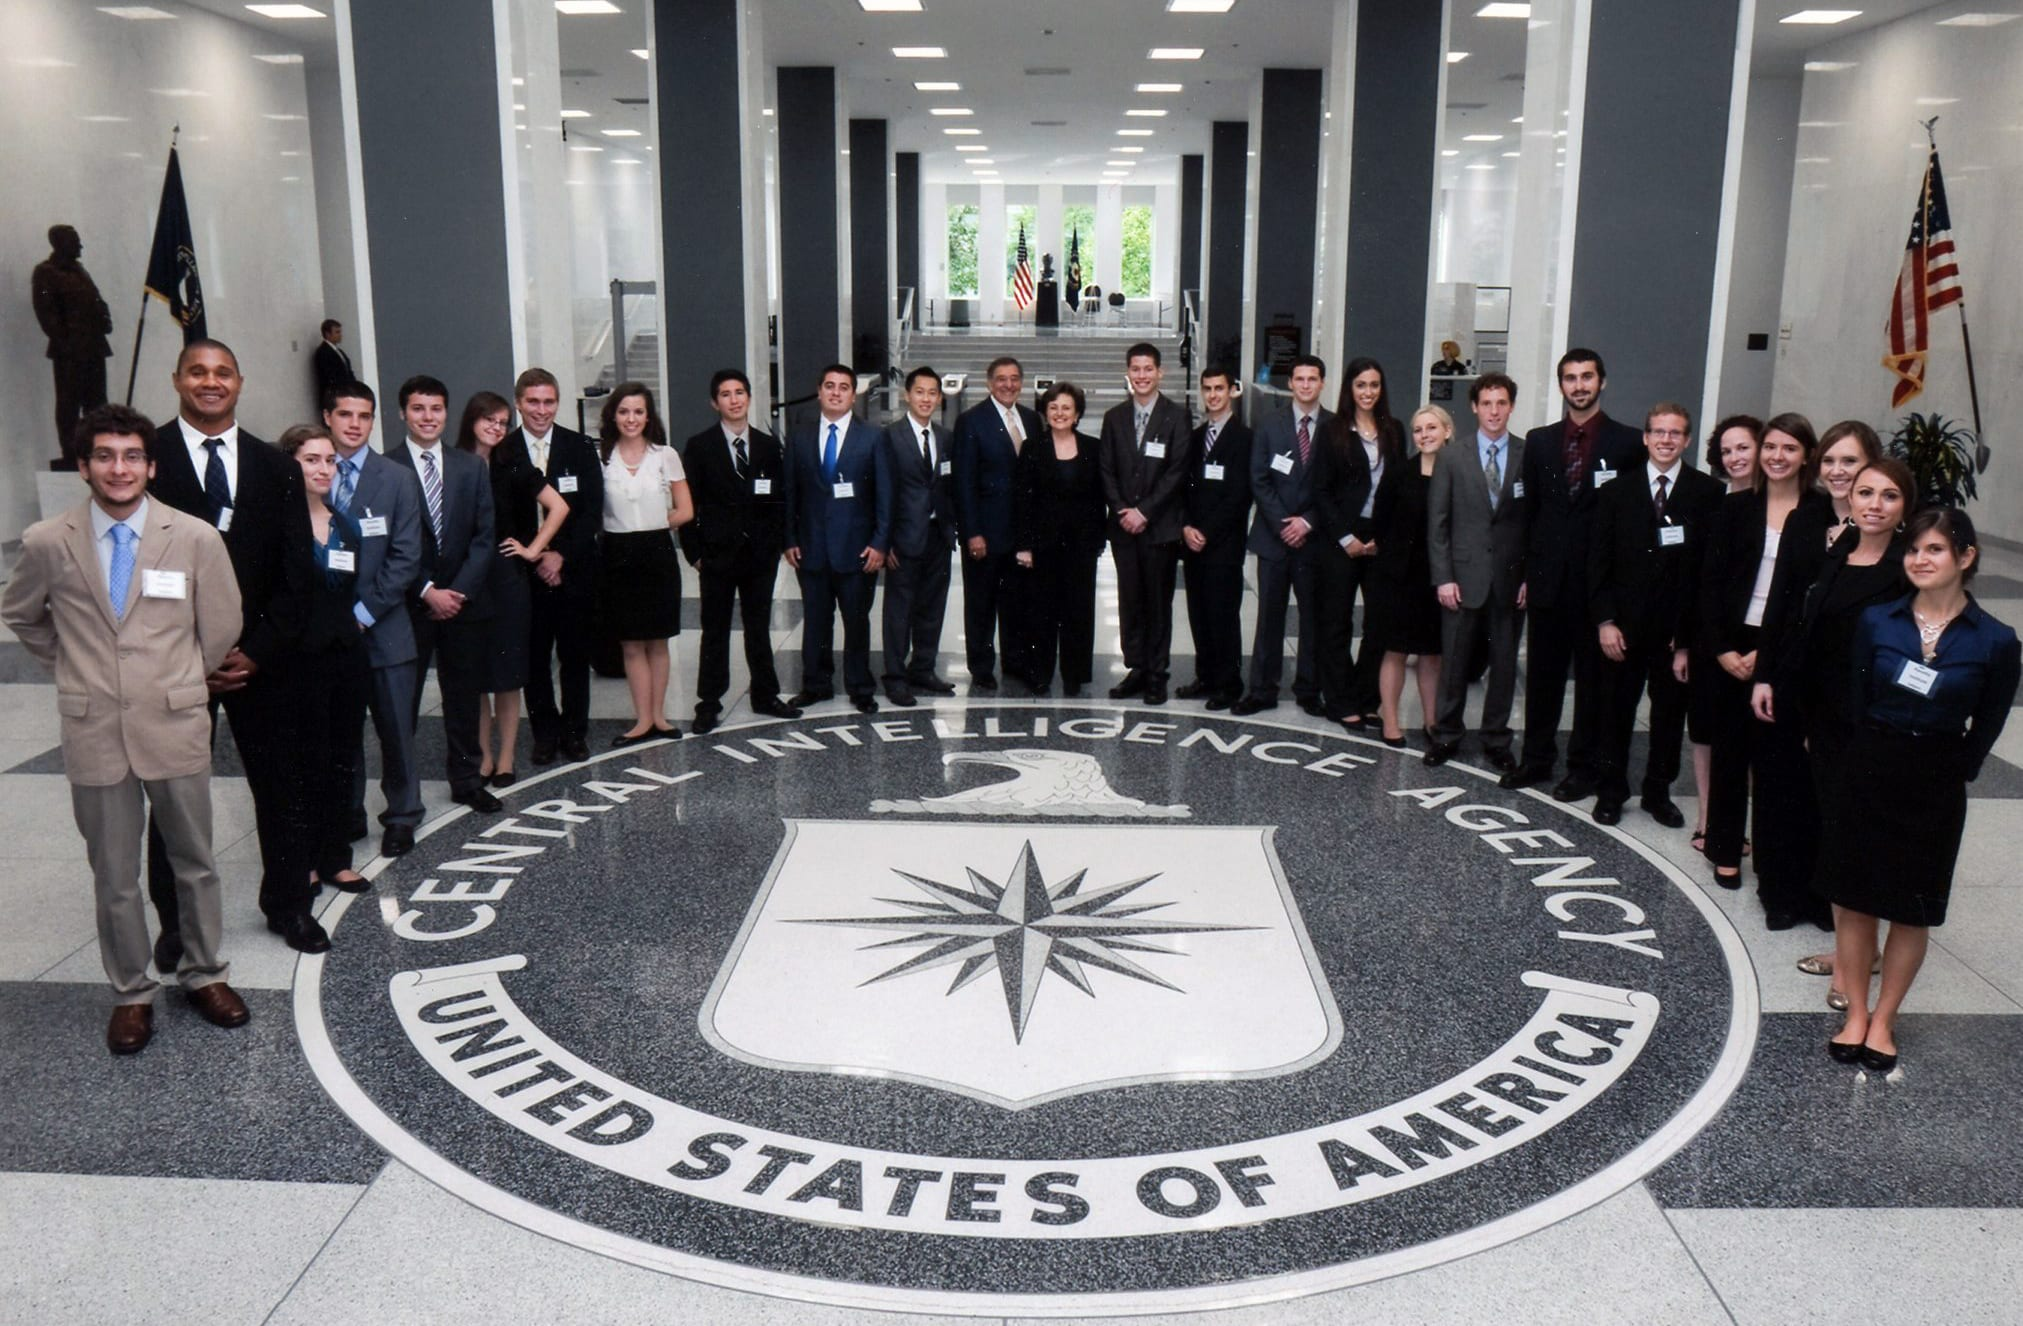 Worlds Best Intelligence Agencies In 2015 -  CIA